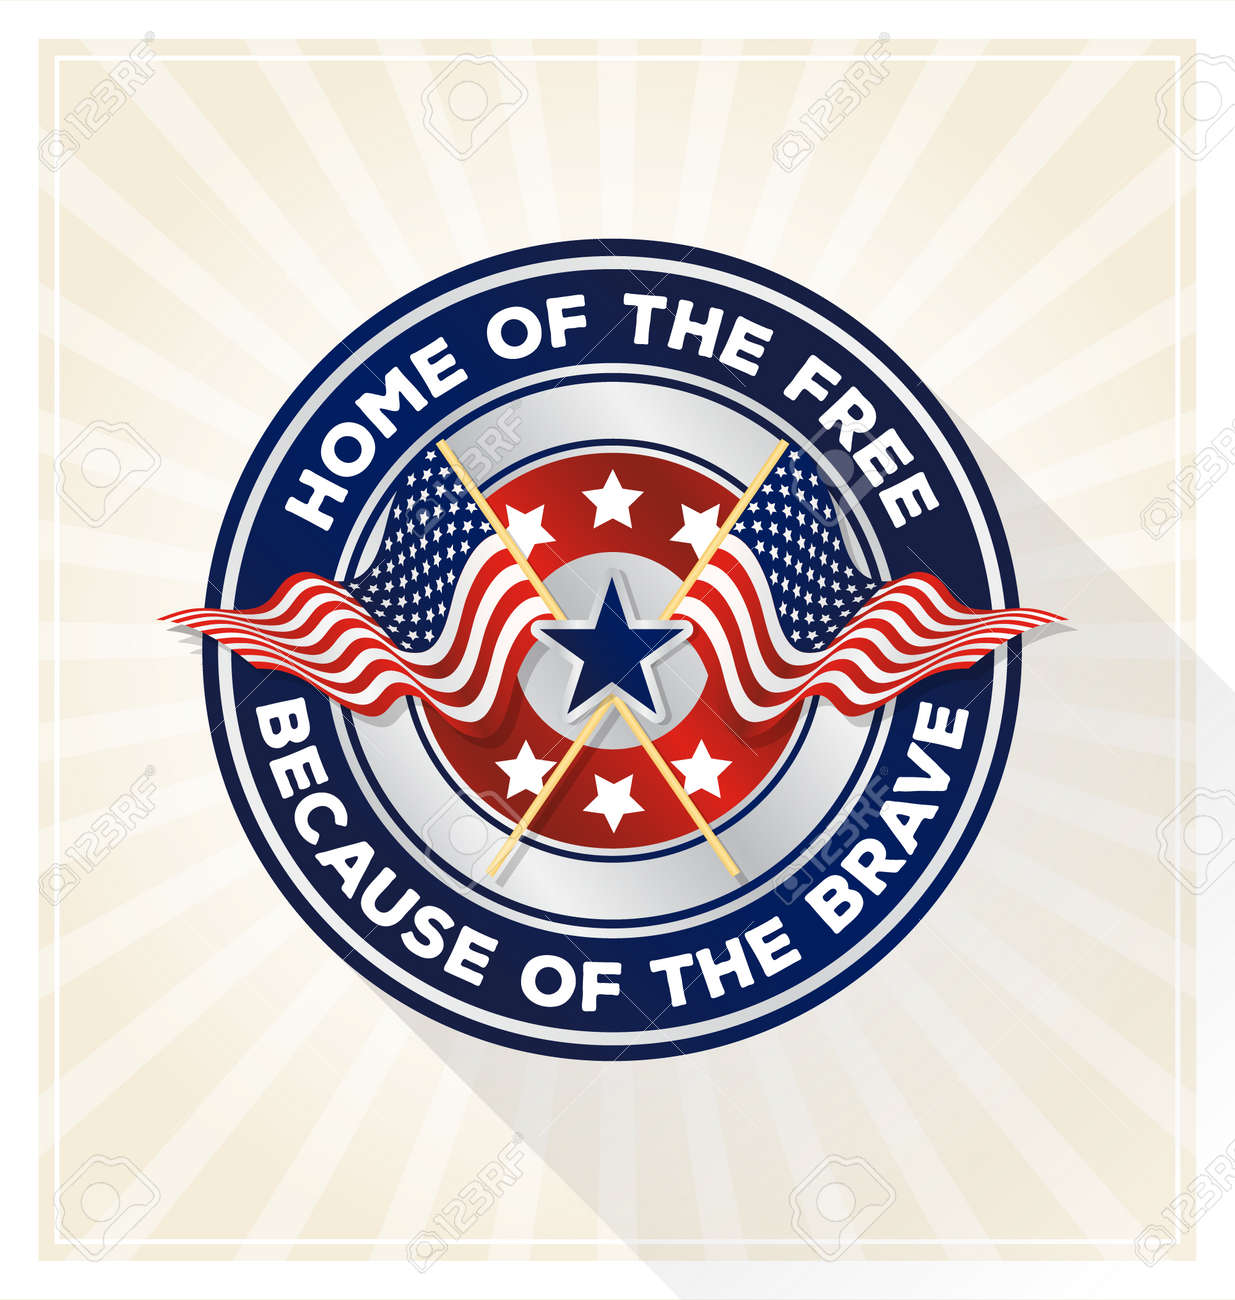 """Memorial day badge concept. USA patriotic shield symbol with text """"Home of the free because of the brave"""". Vector illustration - 58416825"""